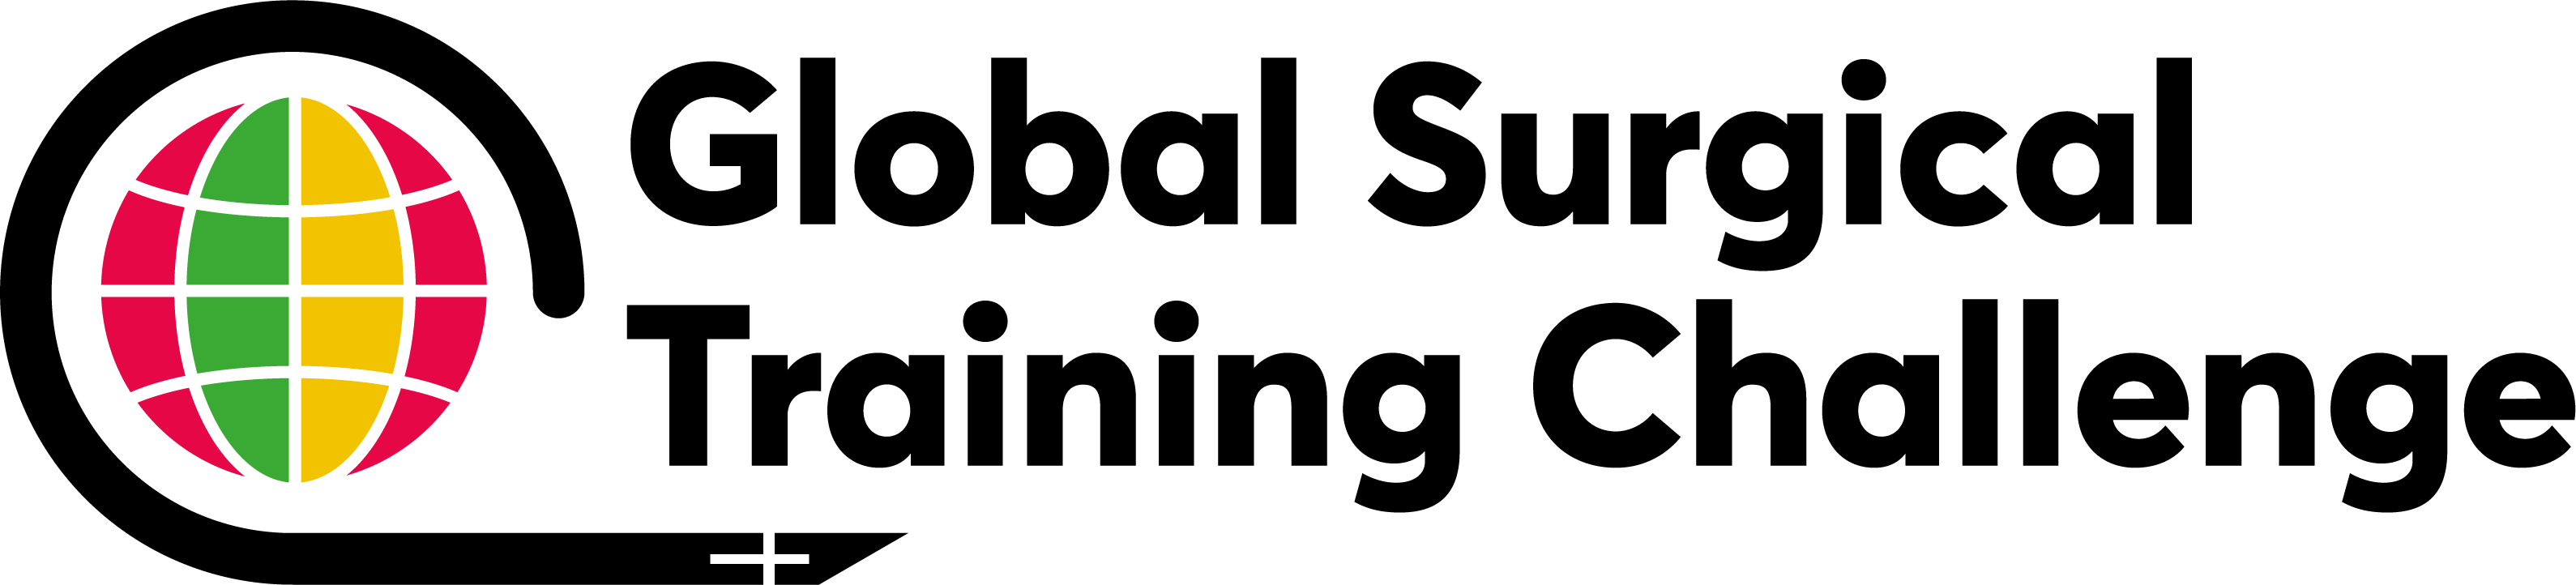 Global Surgical Training Challenge logo